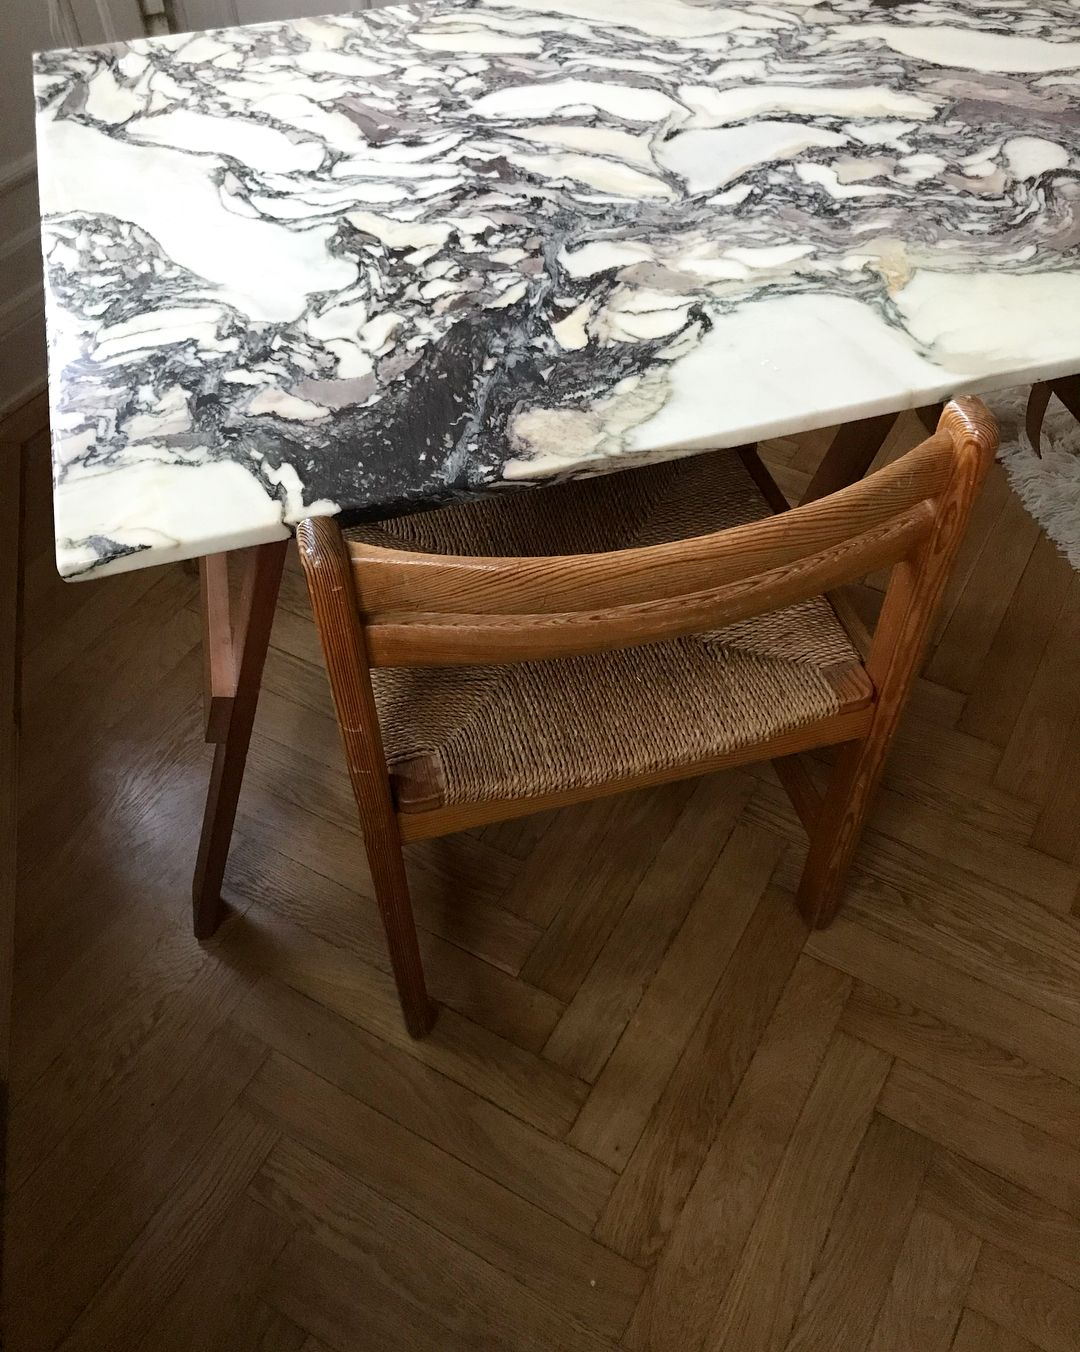 Pin by Siri Susanna on FURNITURE Tables Table